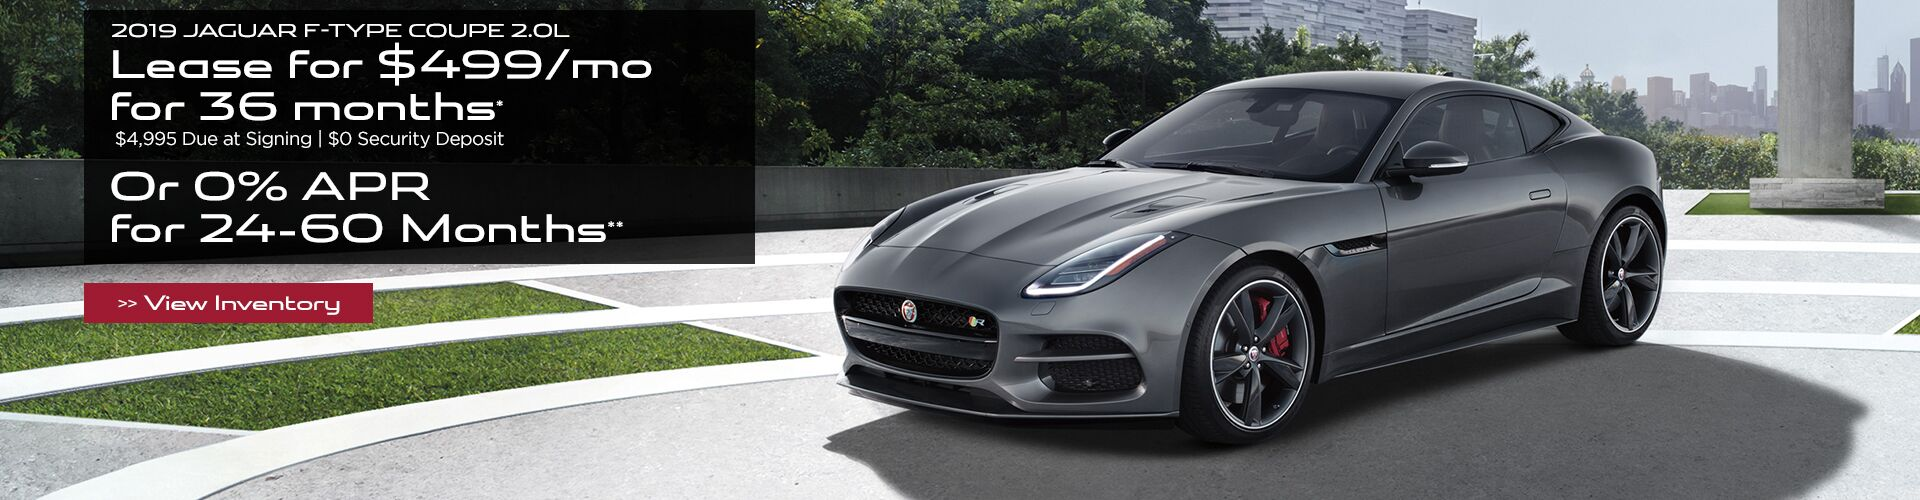 New 2019 F-TYPE in San Antonio TX, serving Boerne, San Marcos